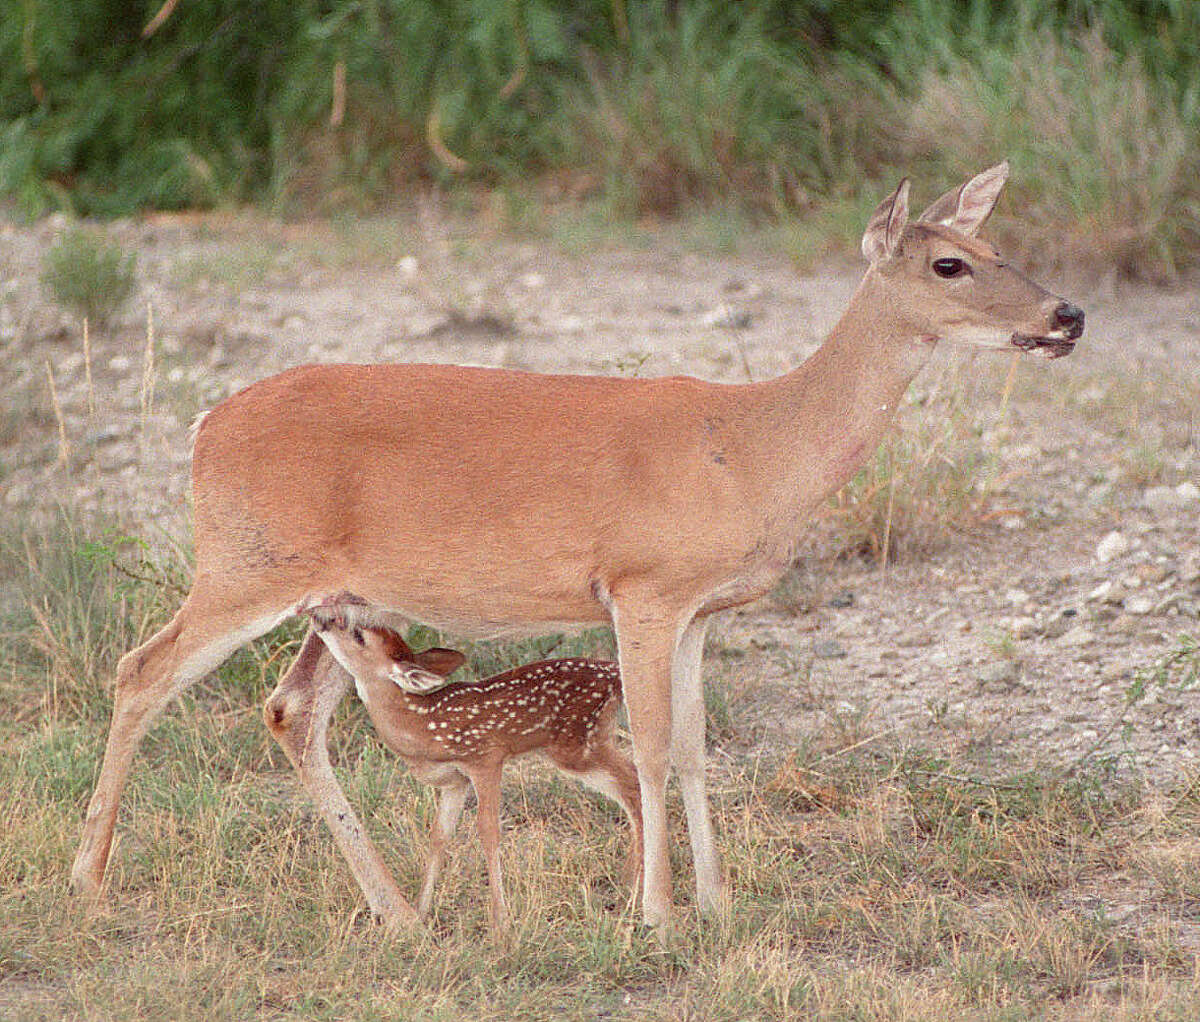 White-tailed deer fawn production appears mixed across Texas this year as heavy spring and early-summer rains fueled excellent habitat conditions in much of the state; flooding eliminated crucial habitat in others.